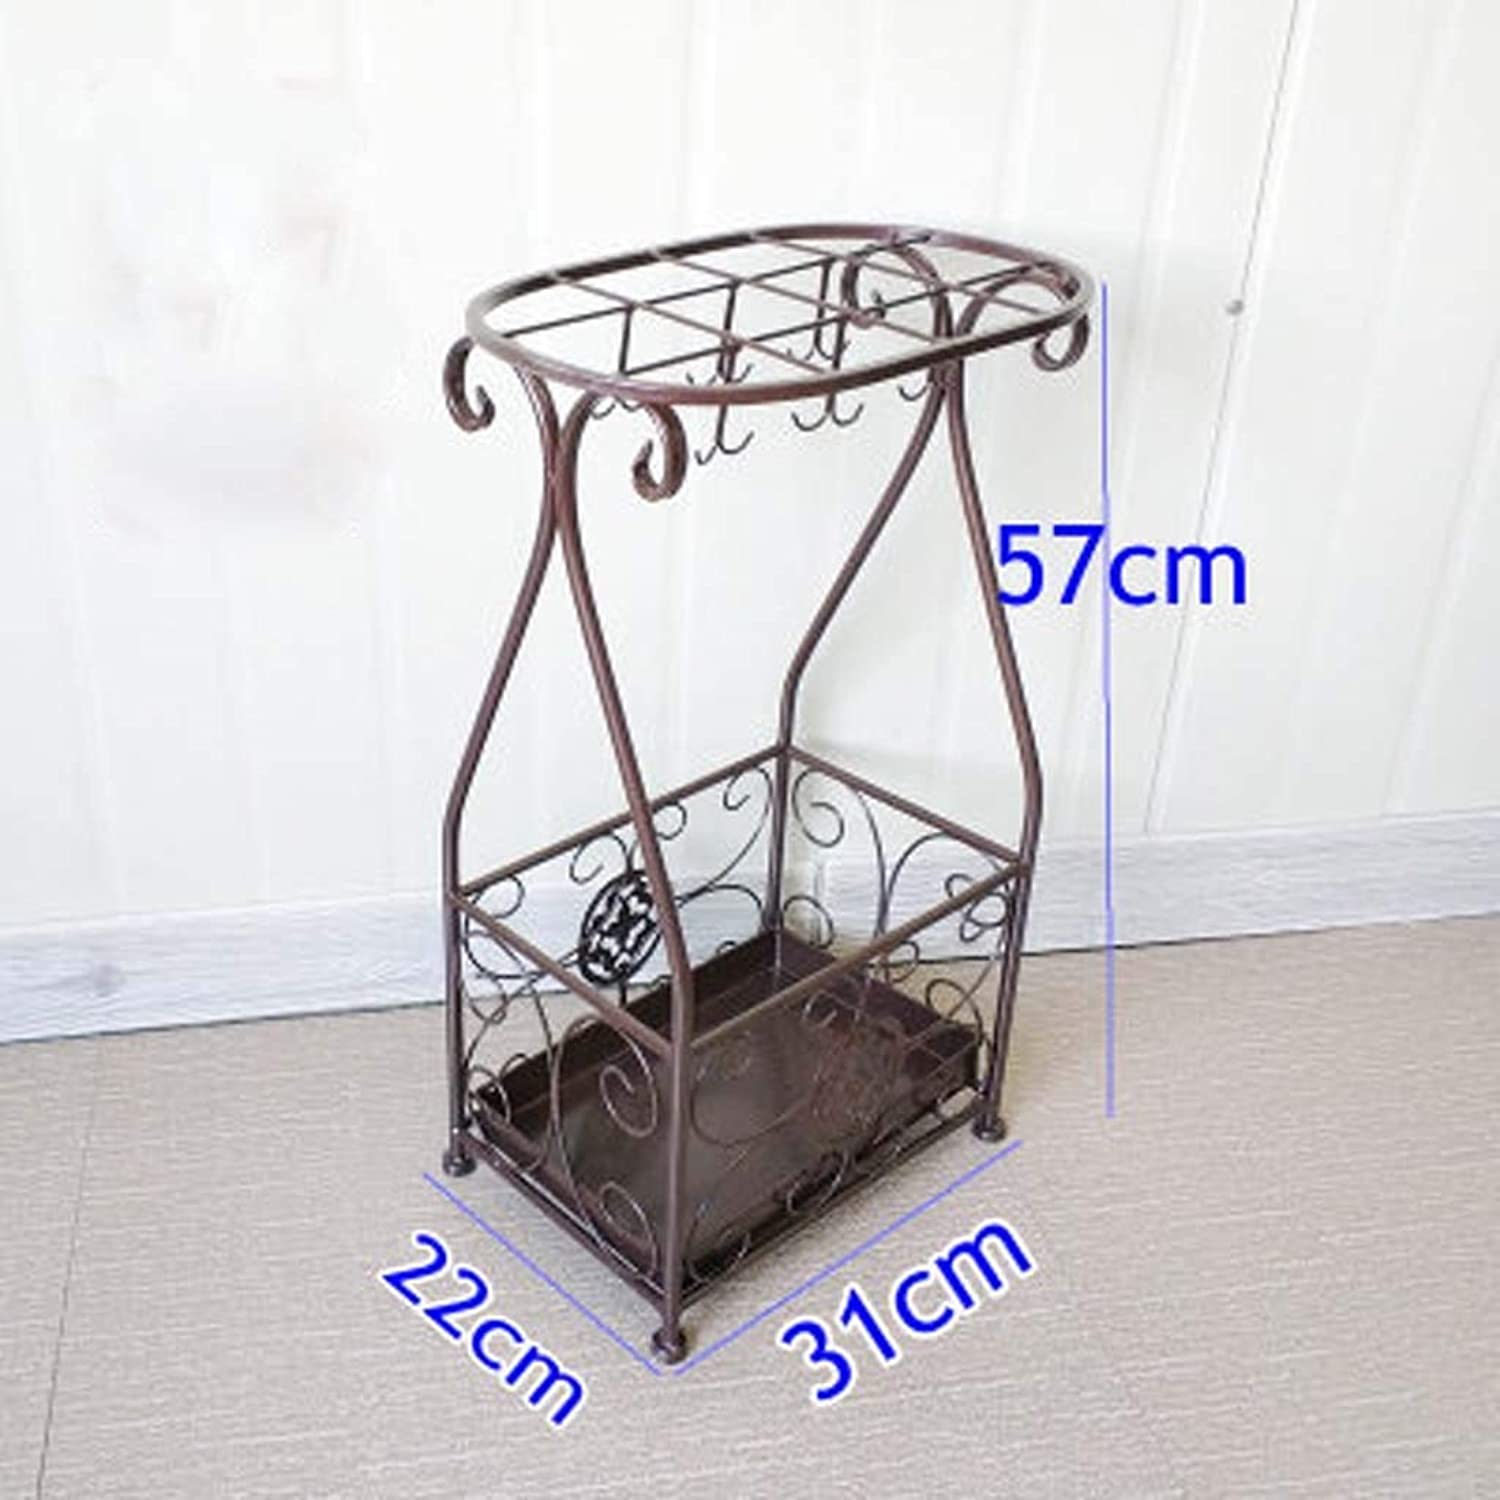 Lsxlsd Umbrella Barrel Umbrella Tub Rectangular Hollow Umbrella Stand Iron Creative Rack Umbrella Stand .(22x31x57cm